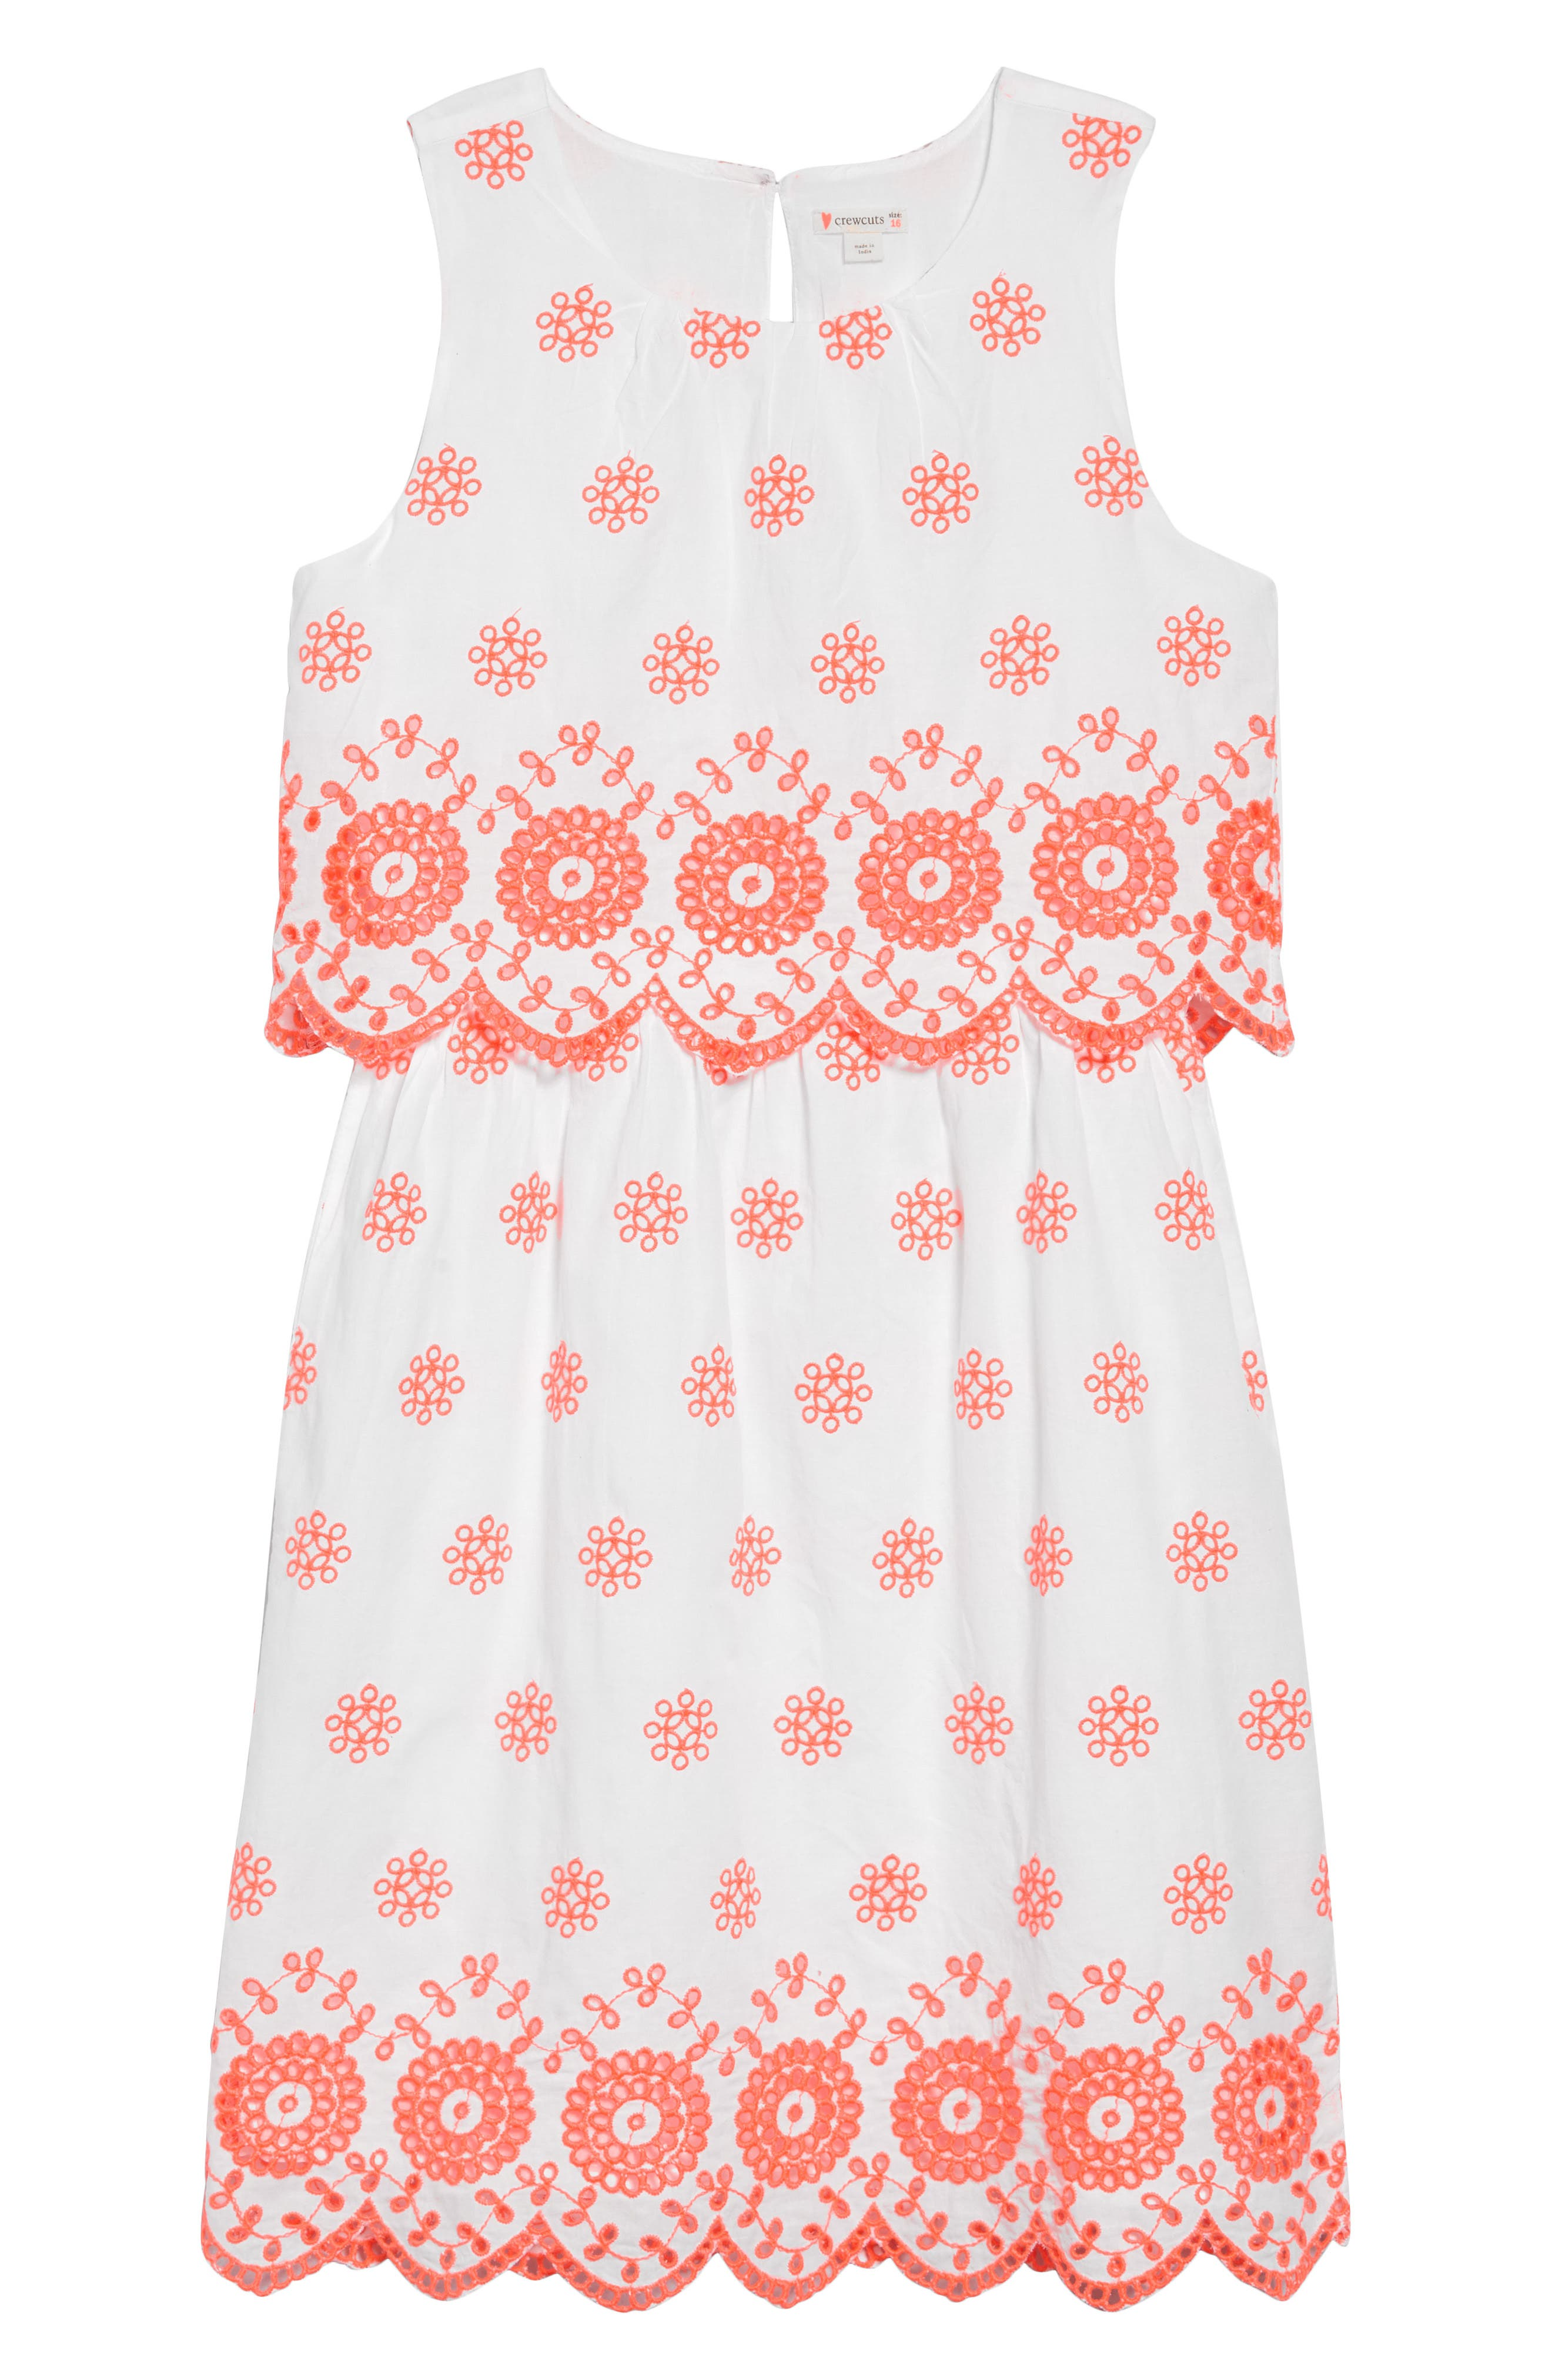 Scalloped Eyelet Sleeveless Dress, Main, color, IVORY NEON CORAL